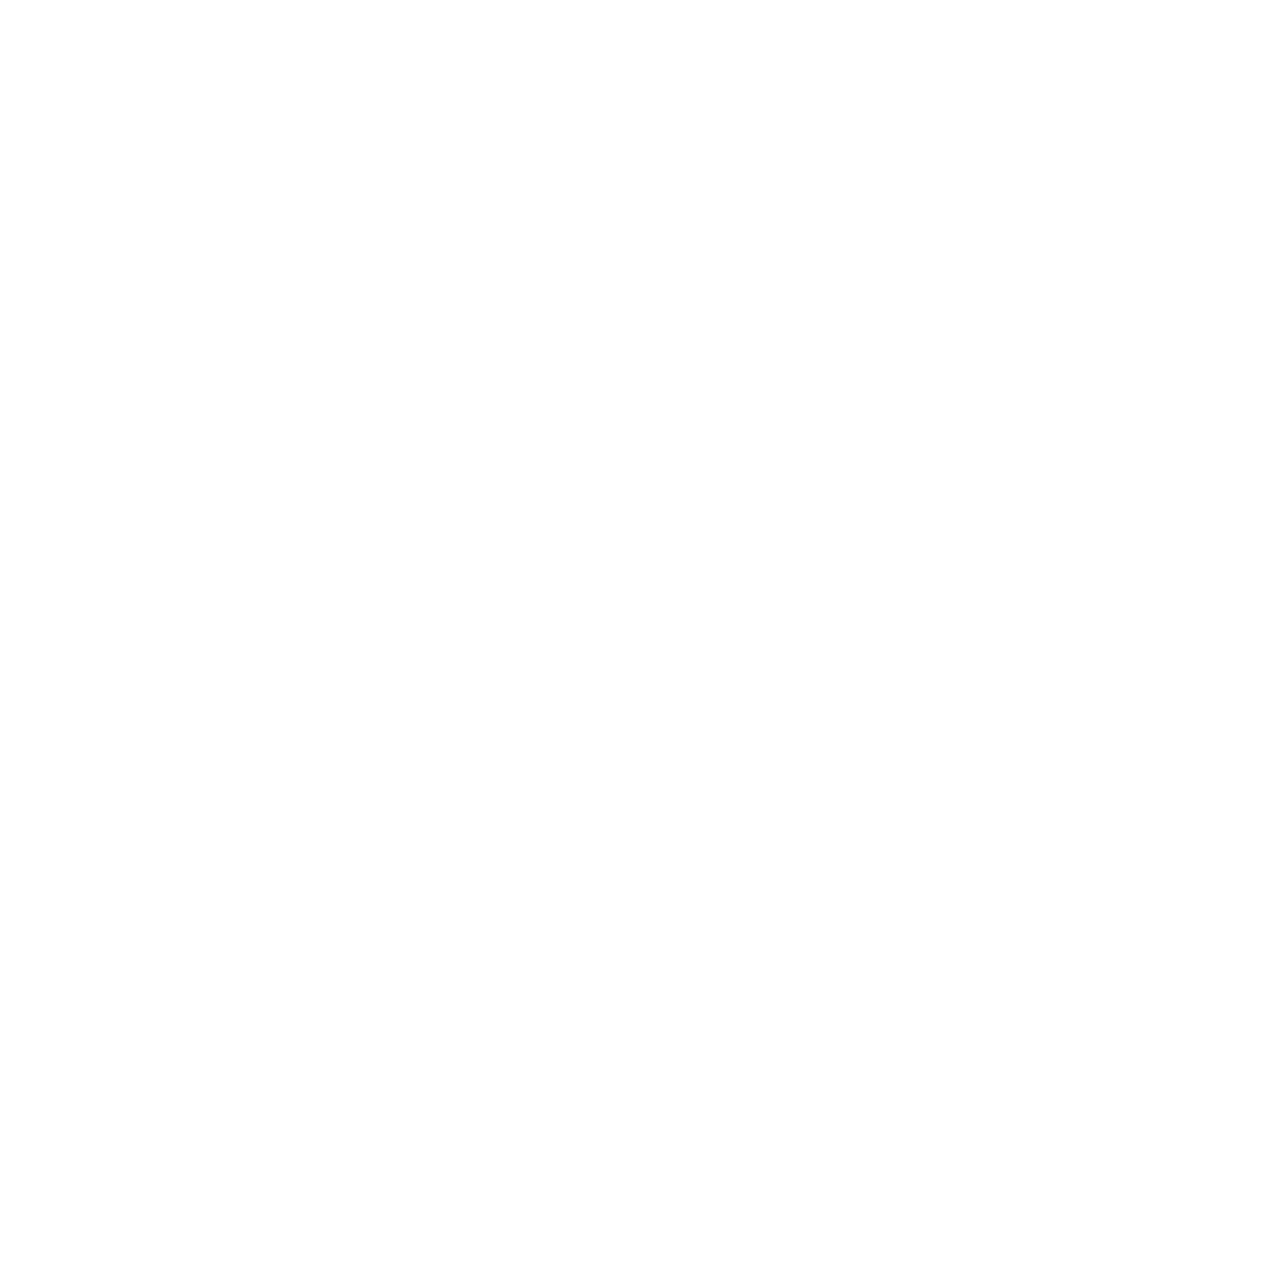 The 72 Hour Stocktake SALE